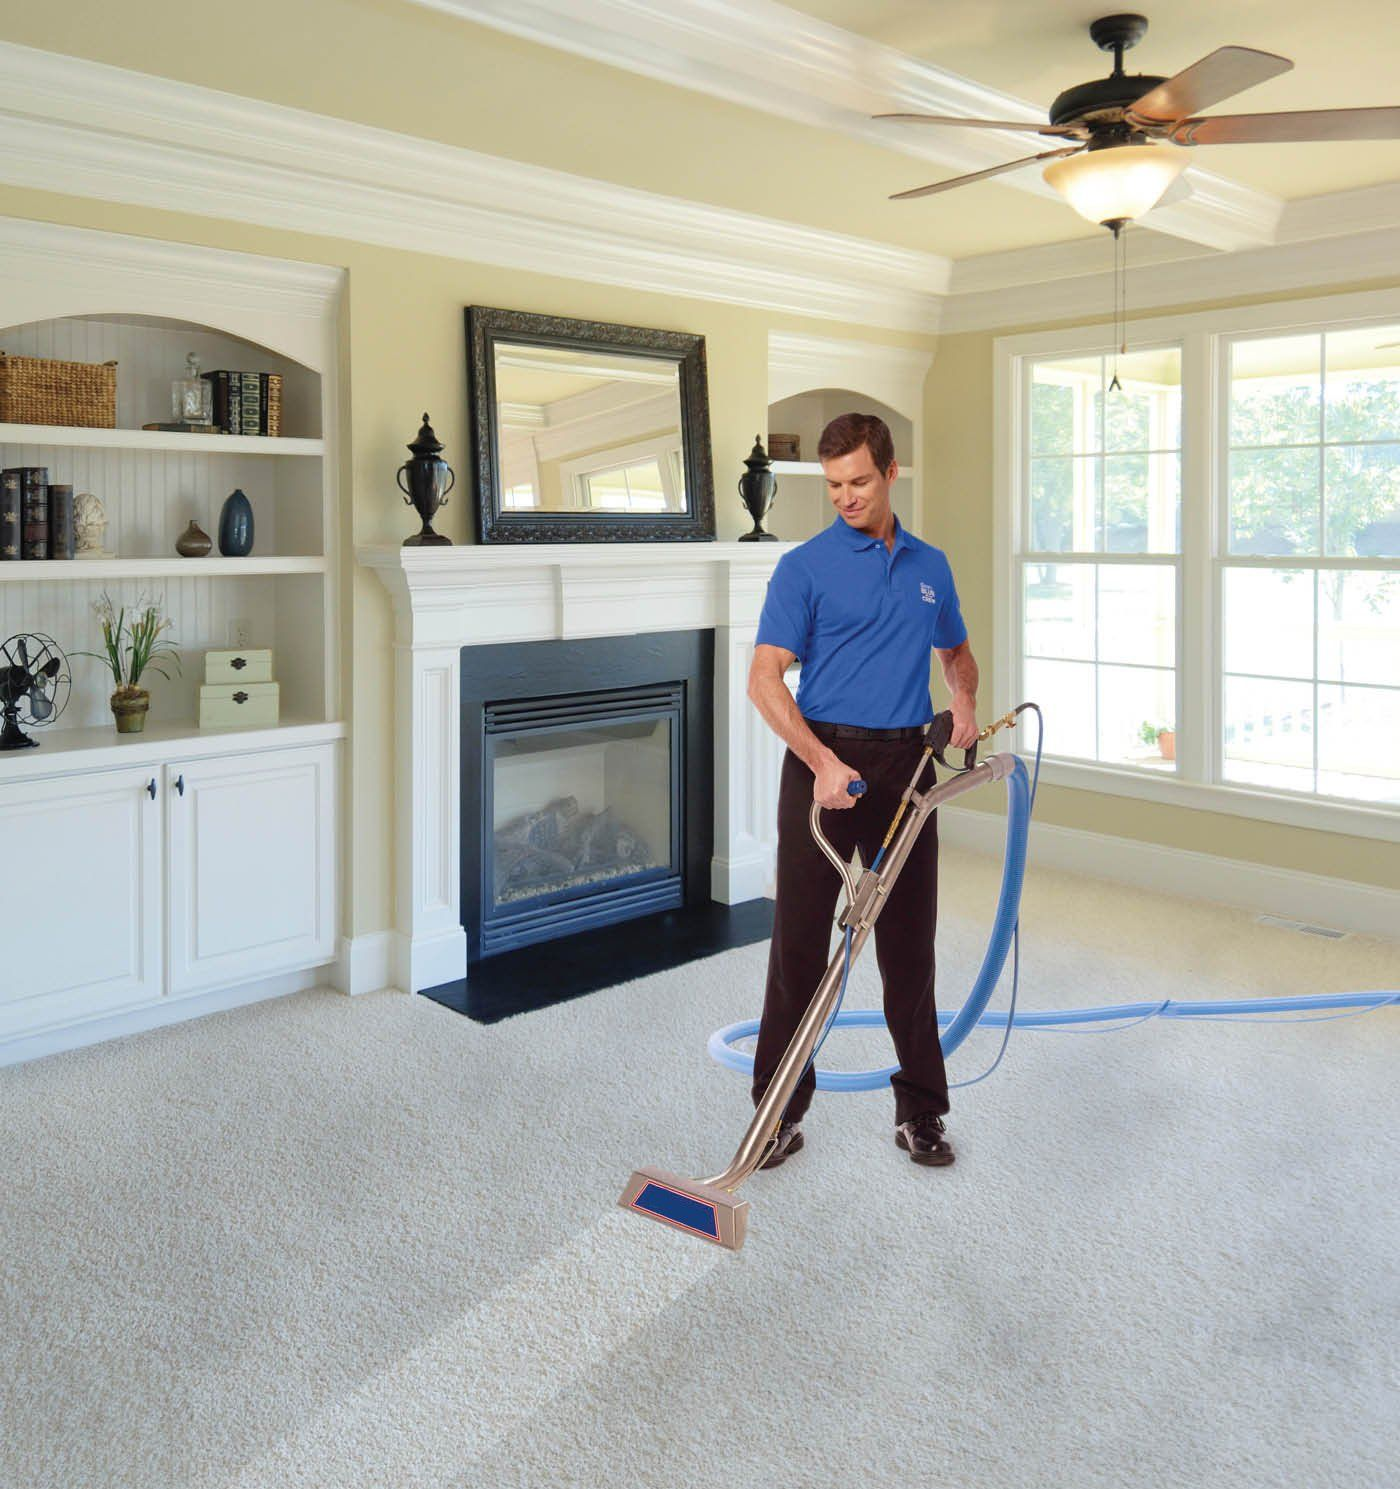 Unidido A Professional Cleaning Service In Uk Offers After Builders Clean Carpet Clean End Of Tena Cleaning Upholstery How To Clean Carpet Steam Clean Carpet